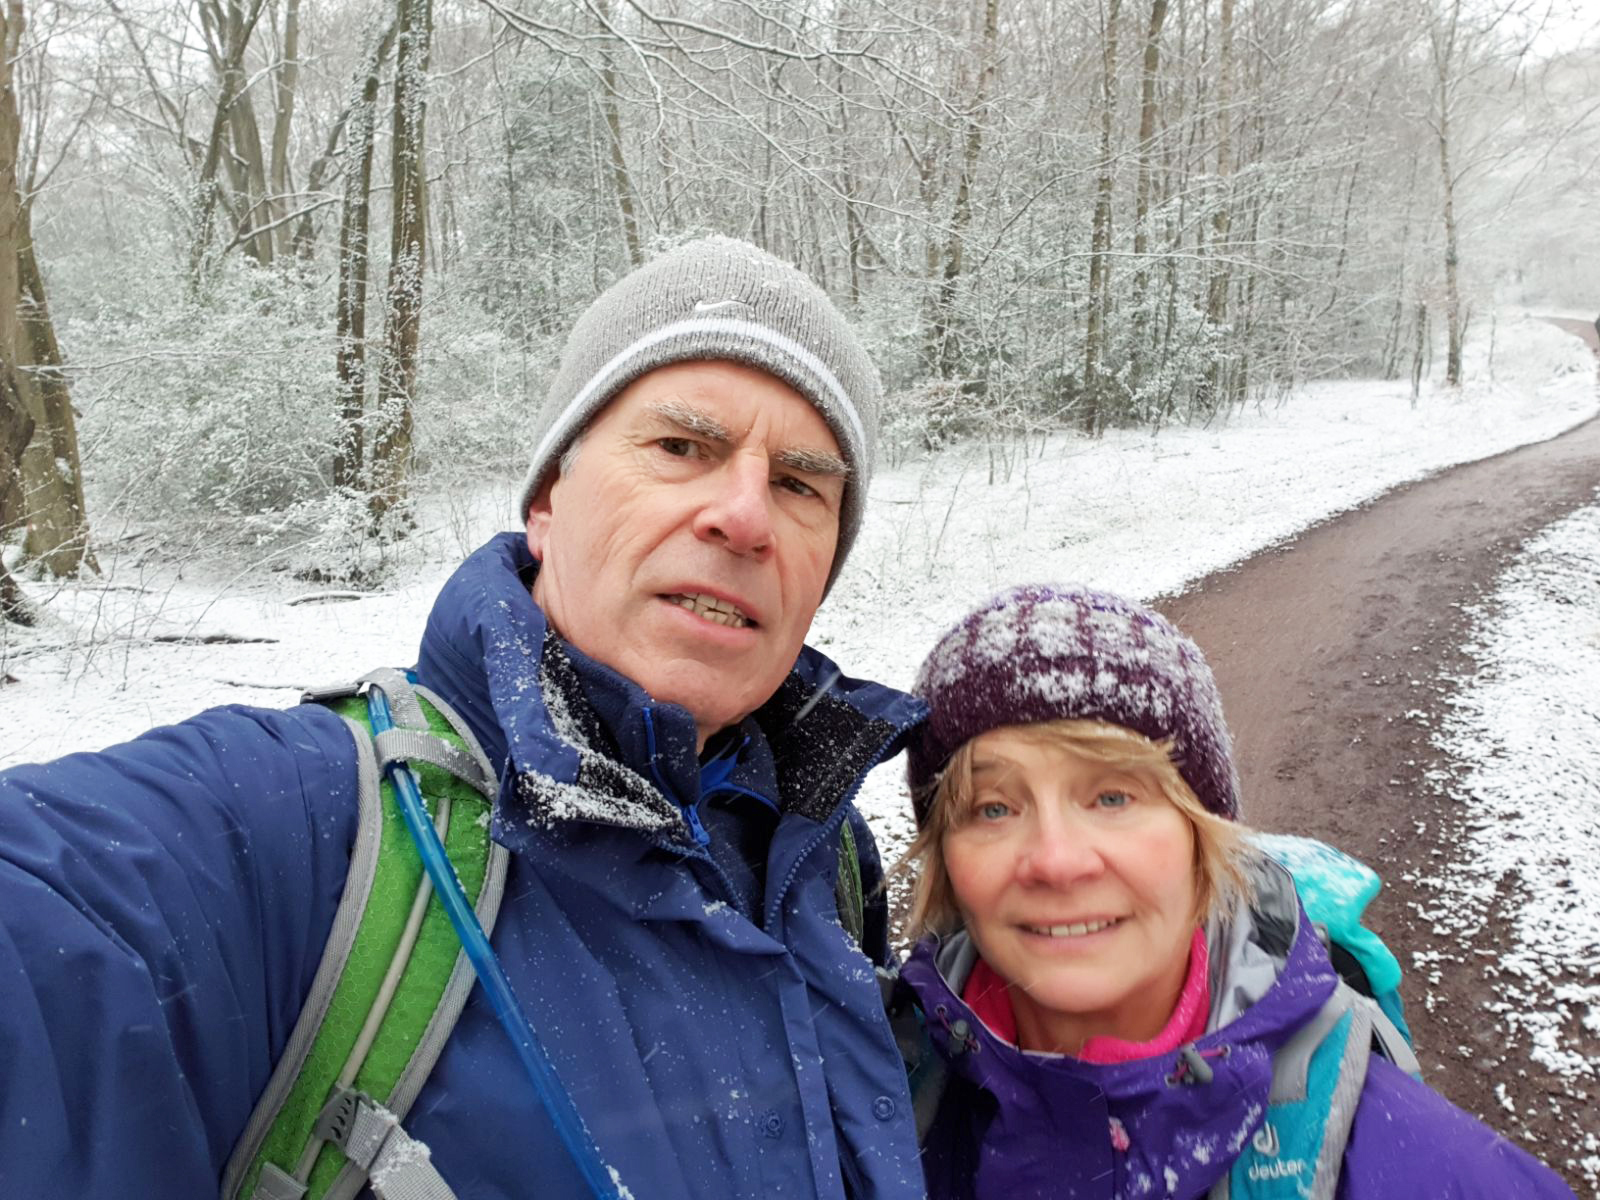 Image showing a man and woman in a frosty forest wearing hiking clothes